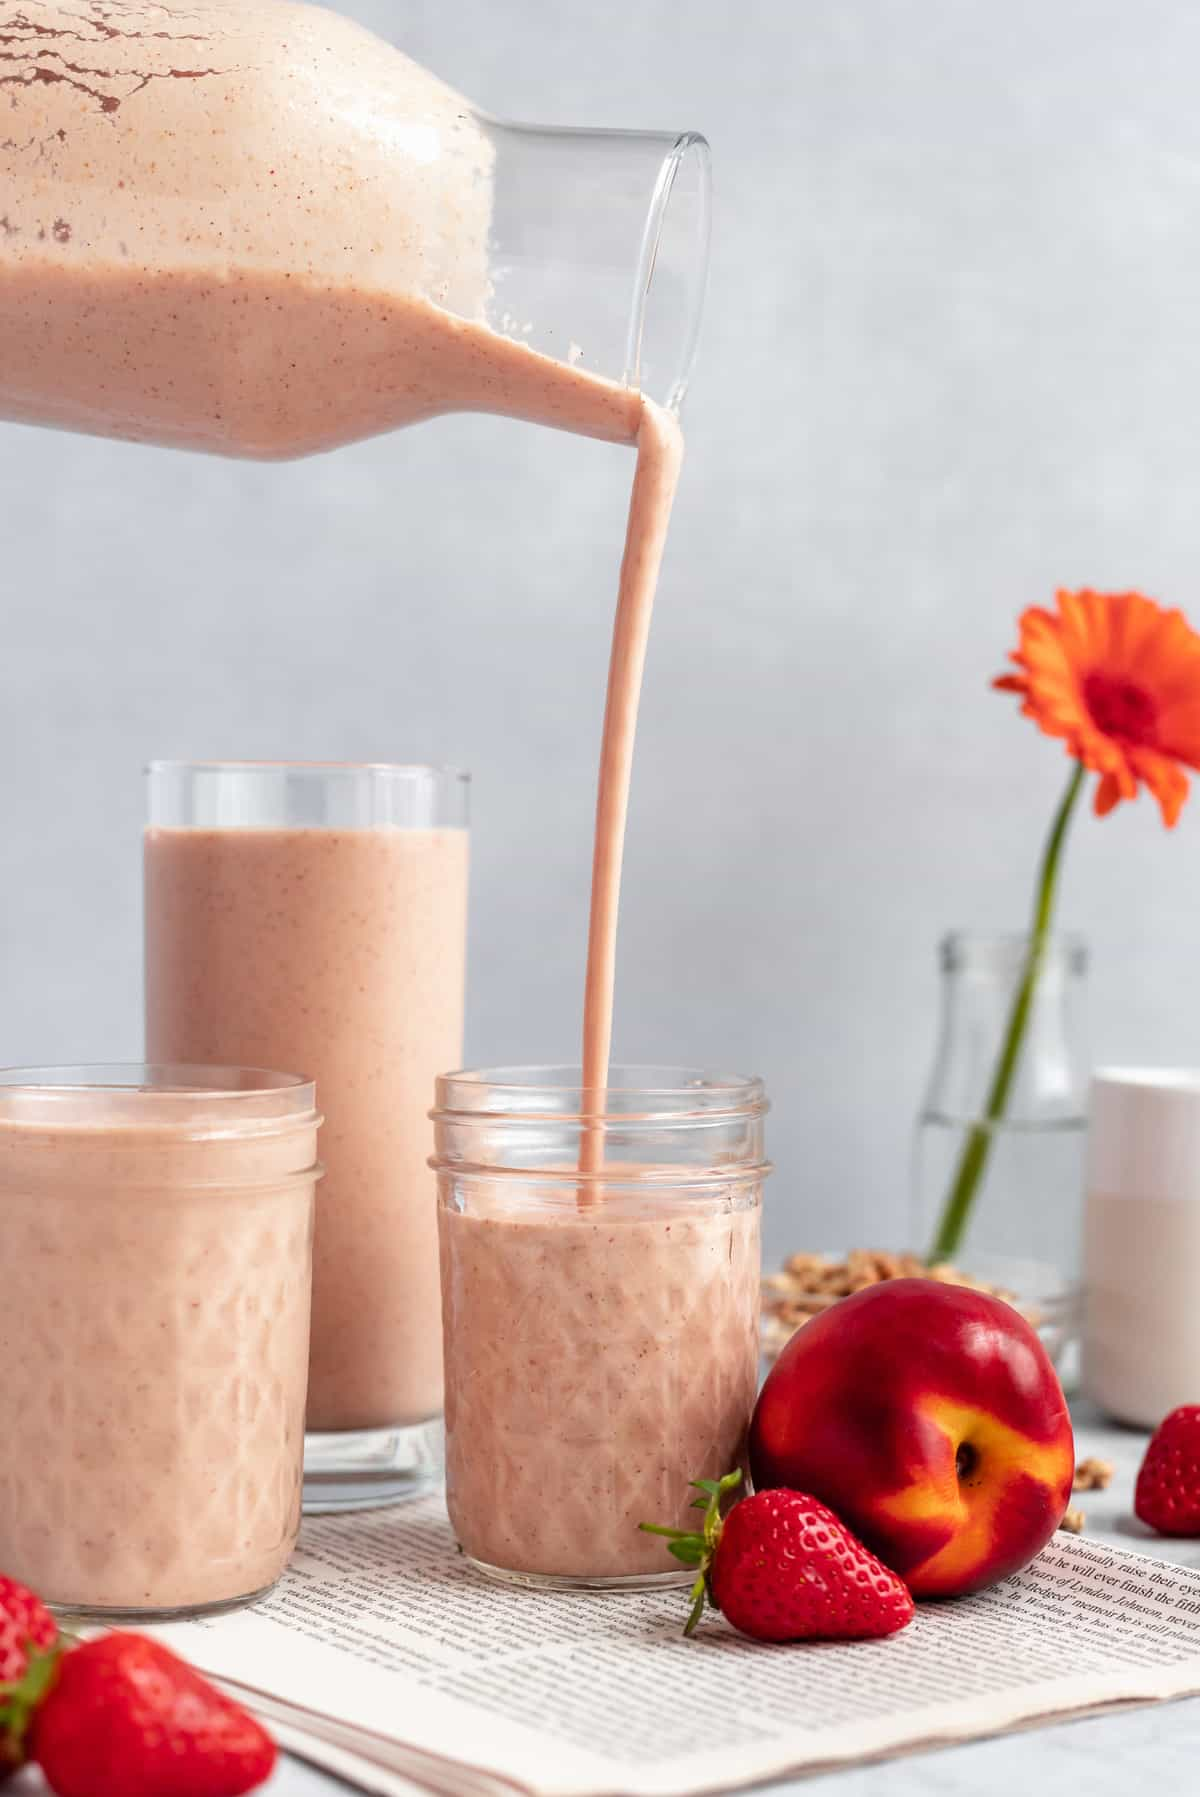 a smoothie being poured from a bottle into a jar, a couple of glasses of smoothie and a flower in the background